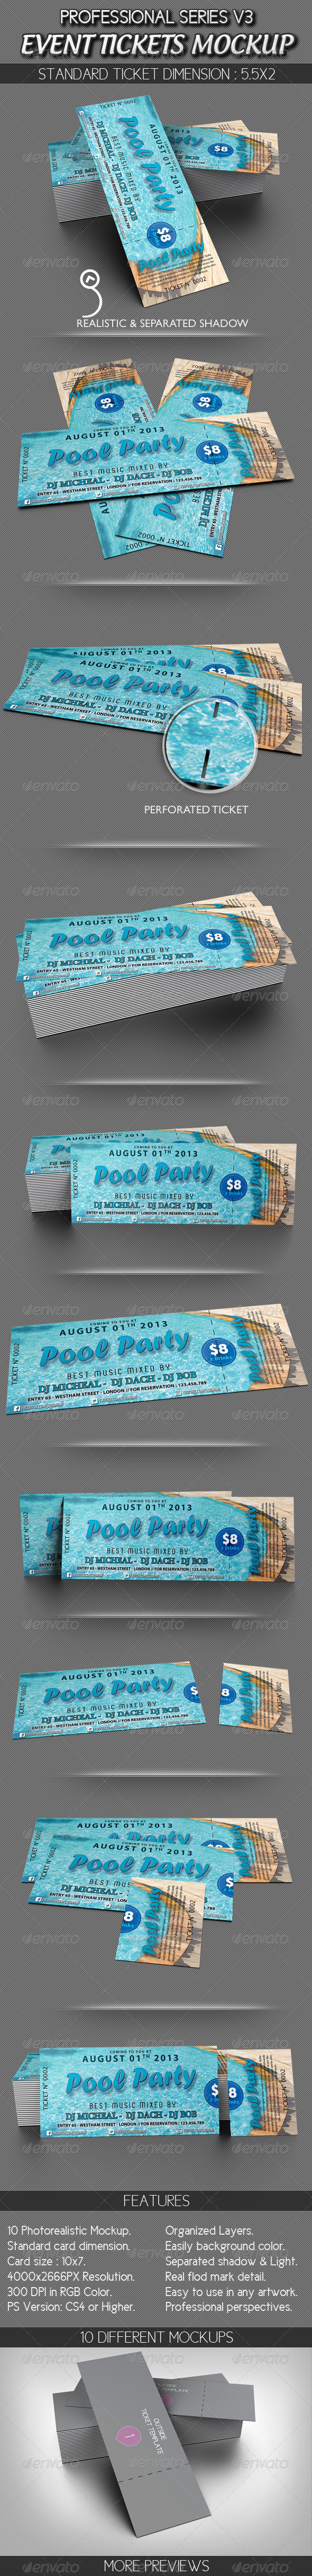 Event Tickets Mockup - Miscellaneous Print